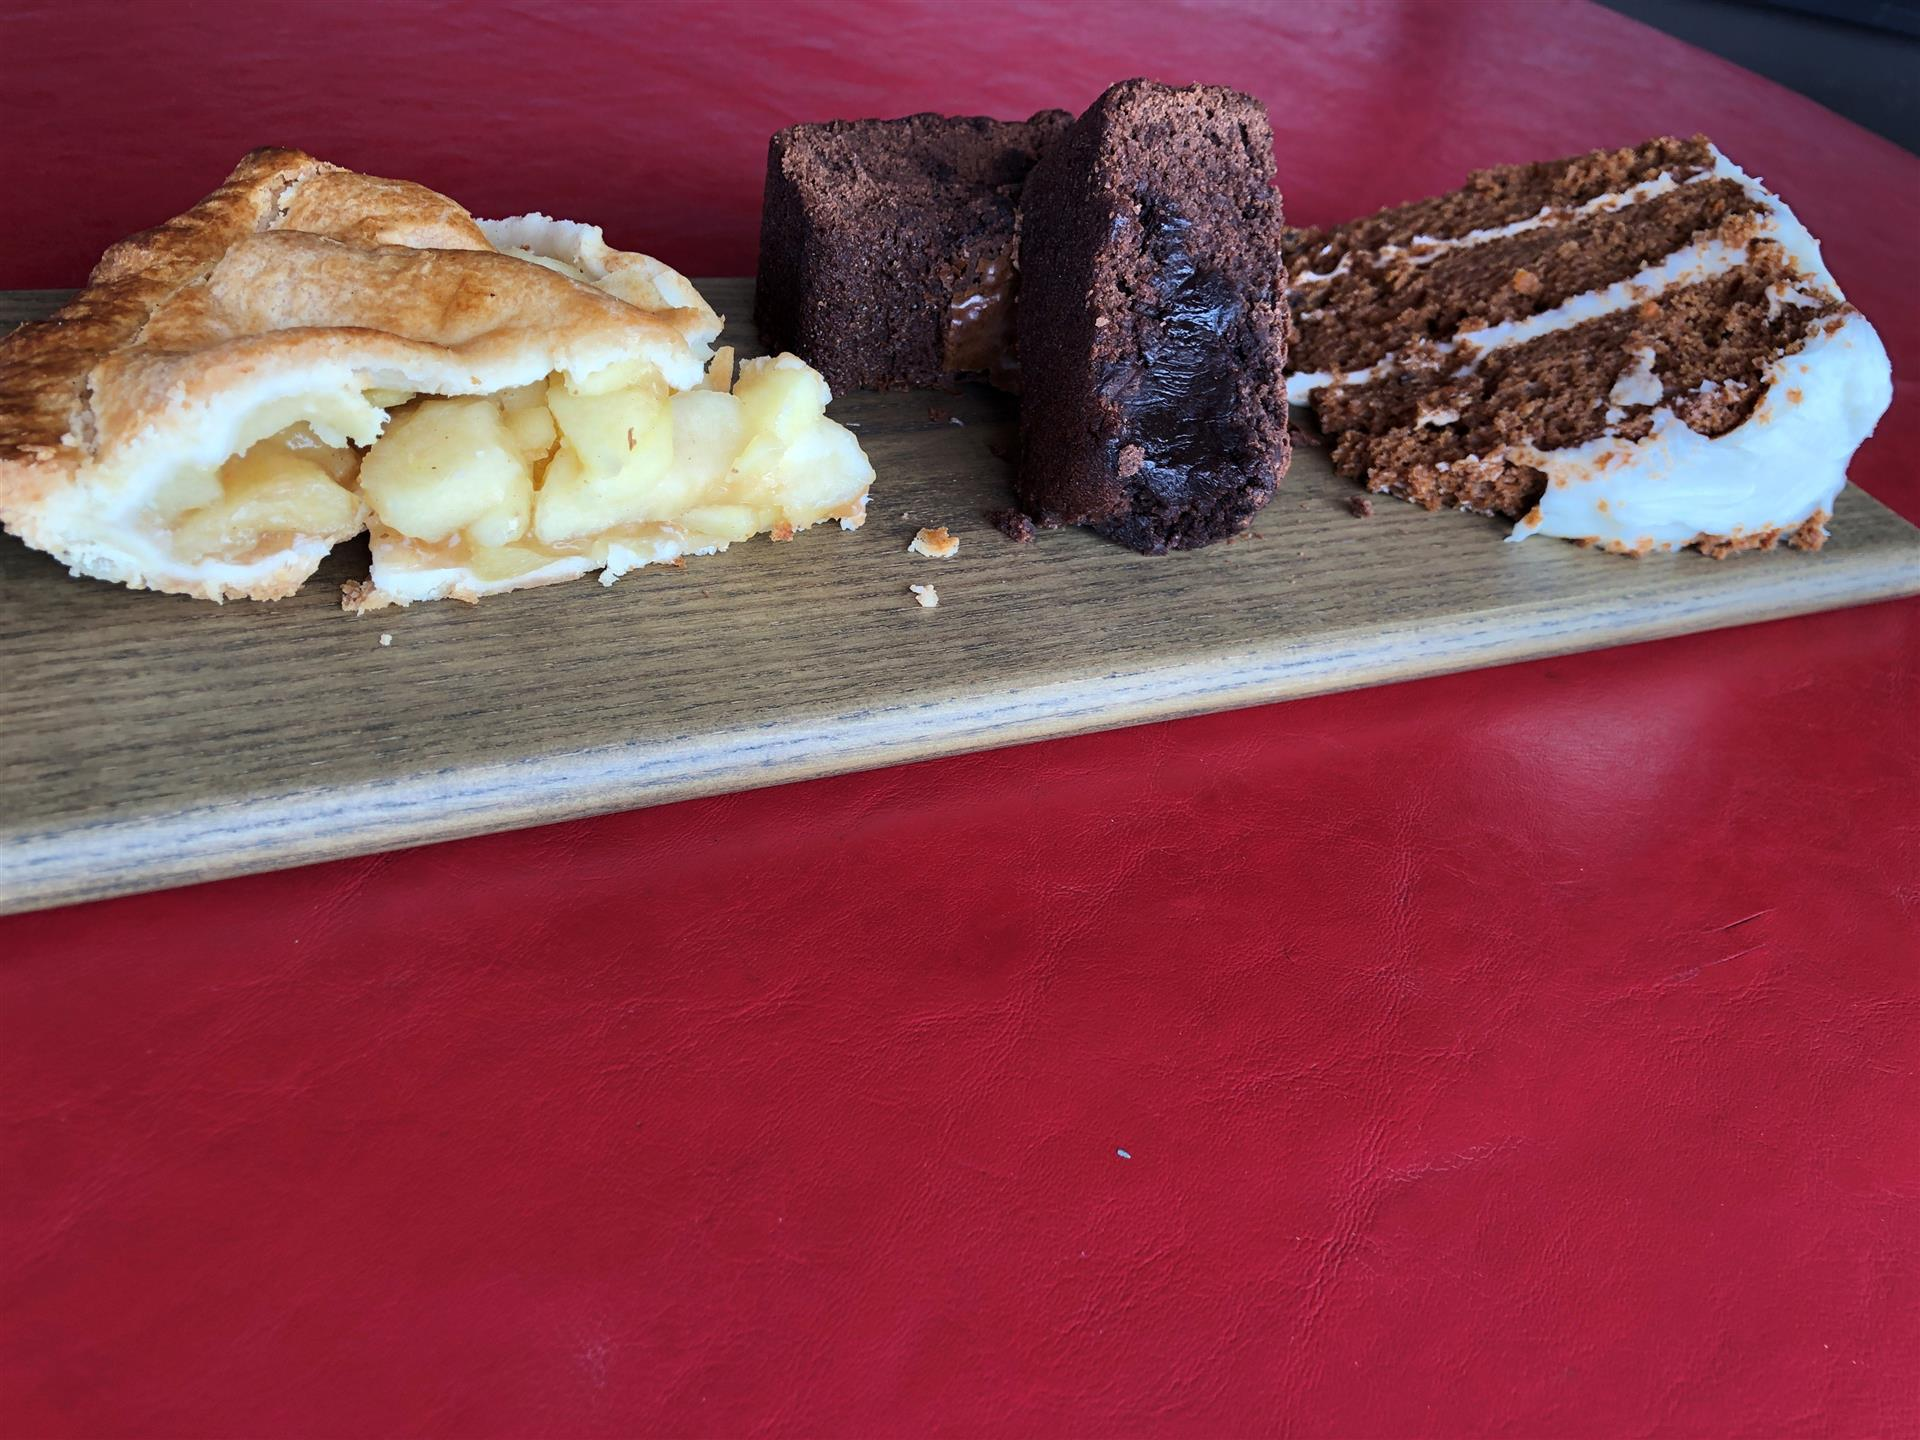 tray of desserts: apple pie, brownie and carrot cake